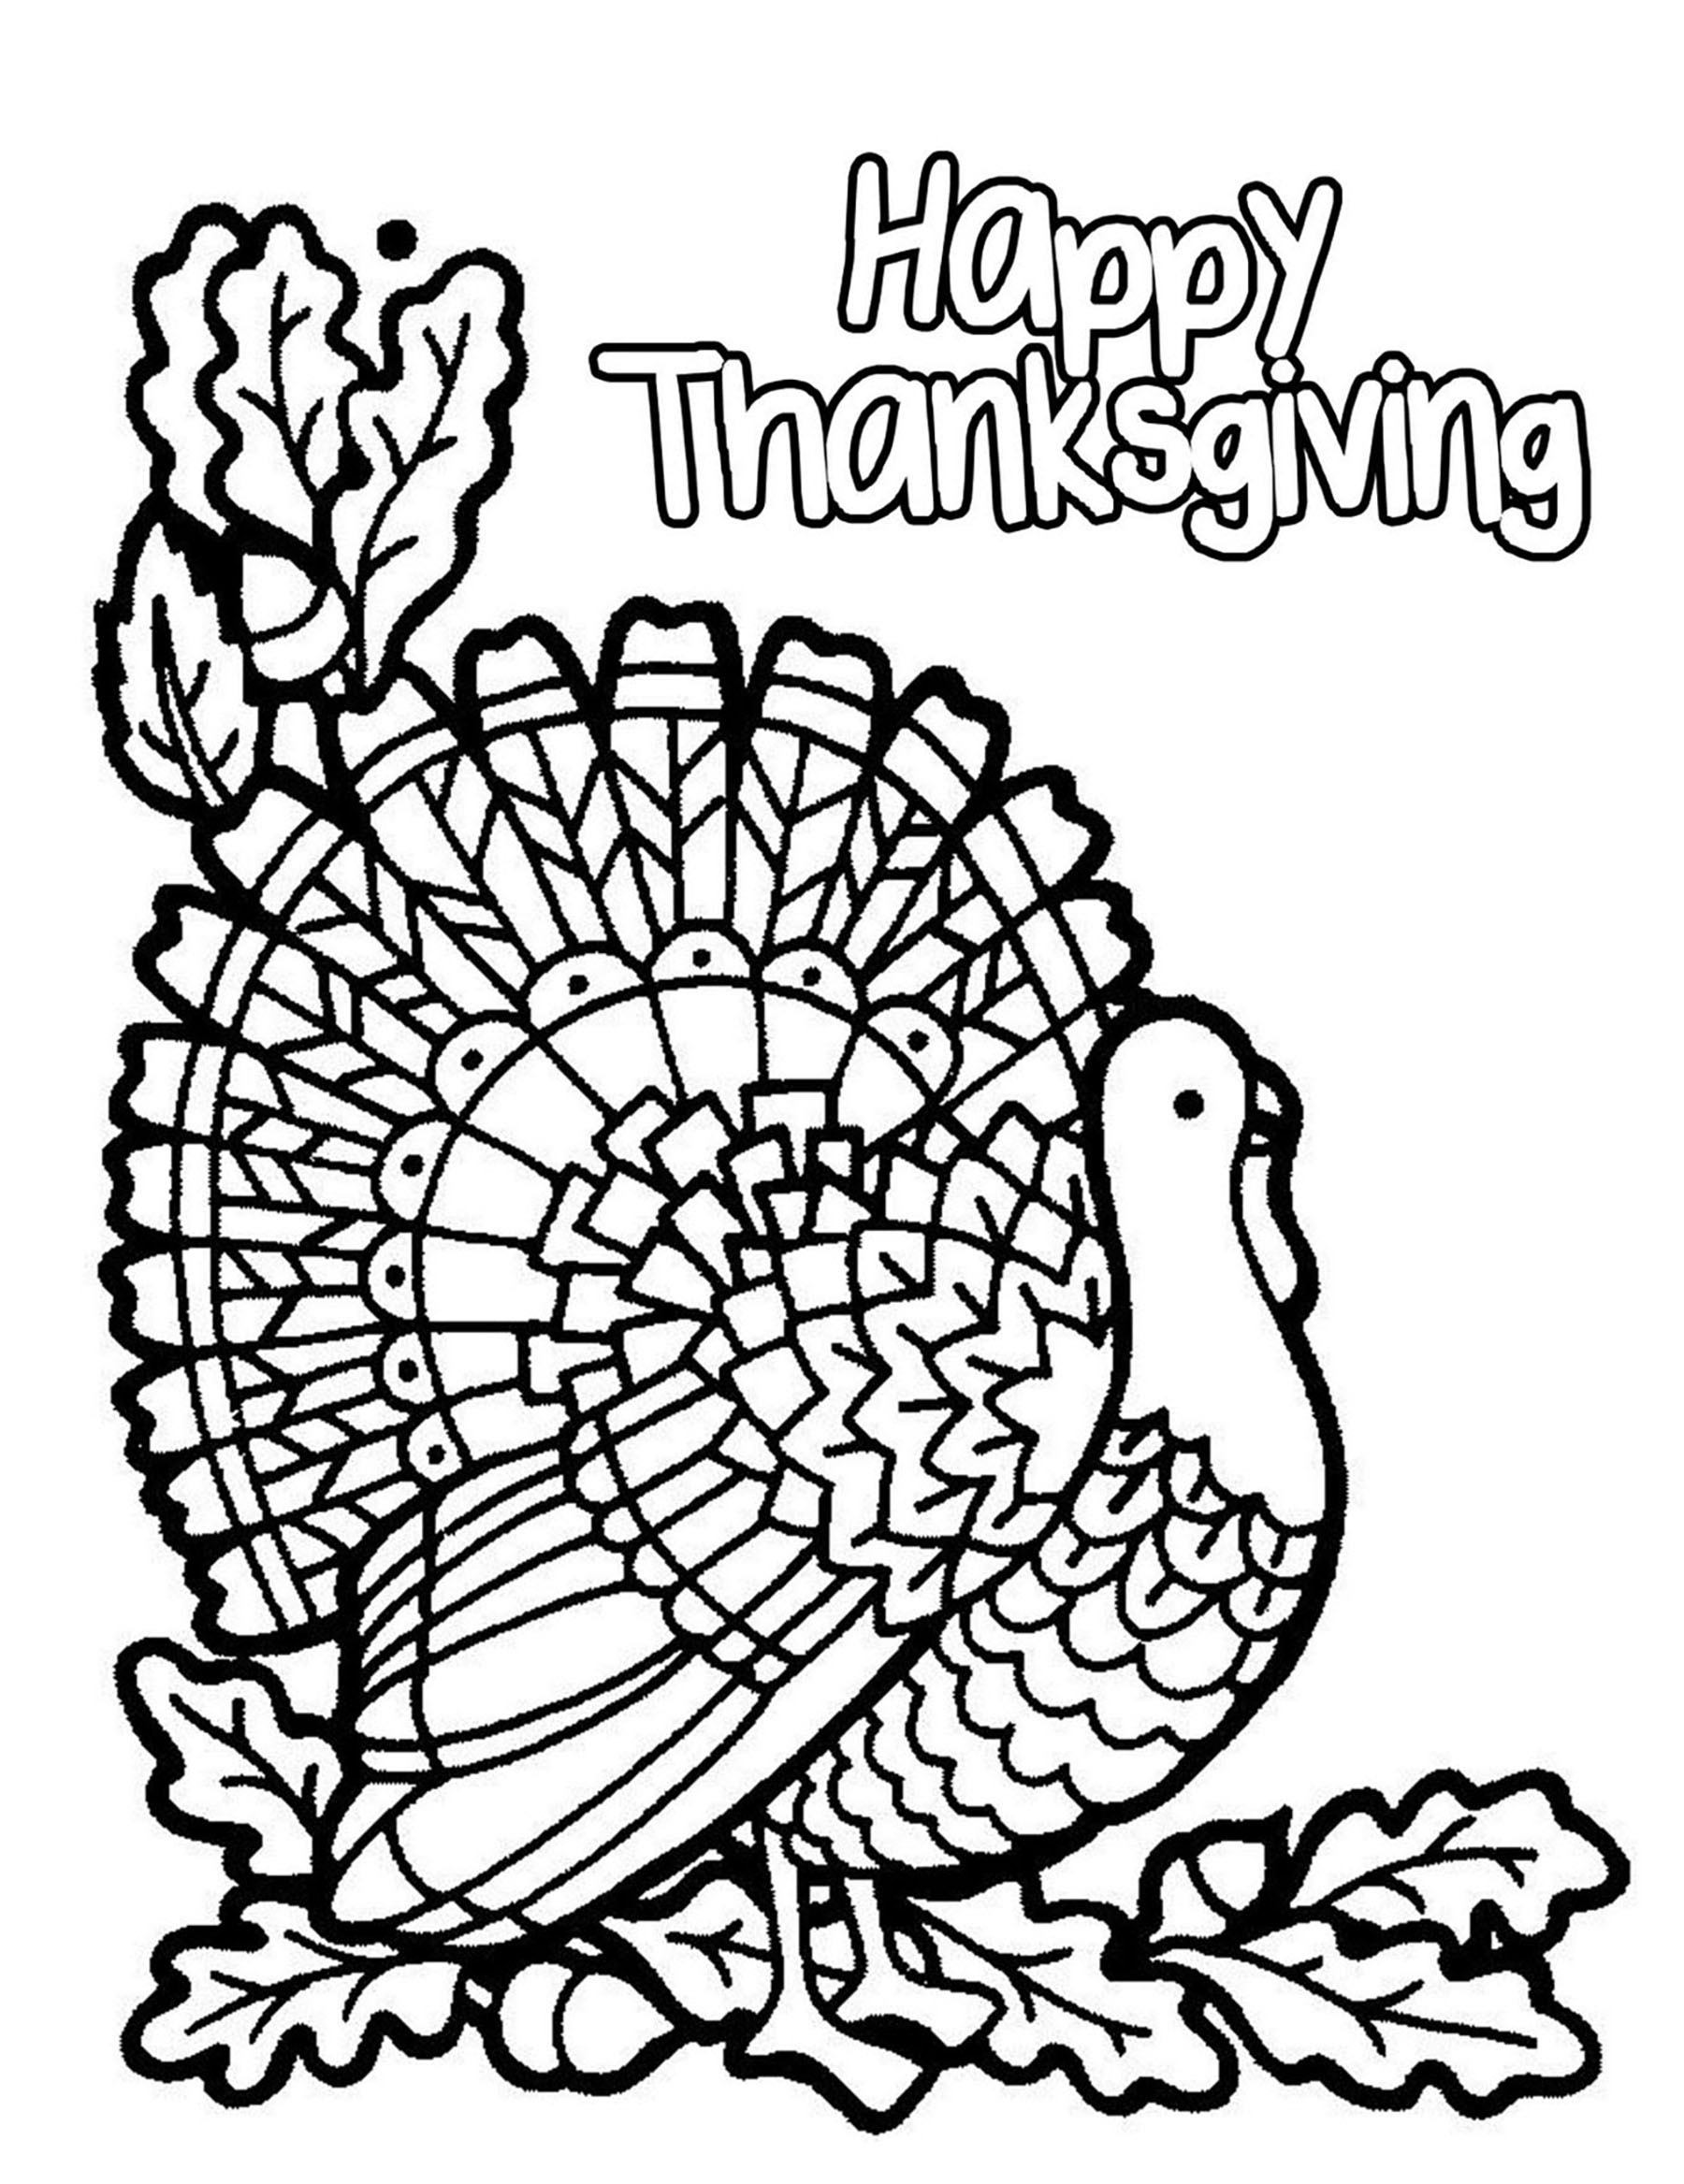 Facile happy thanksgiving dinde